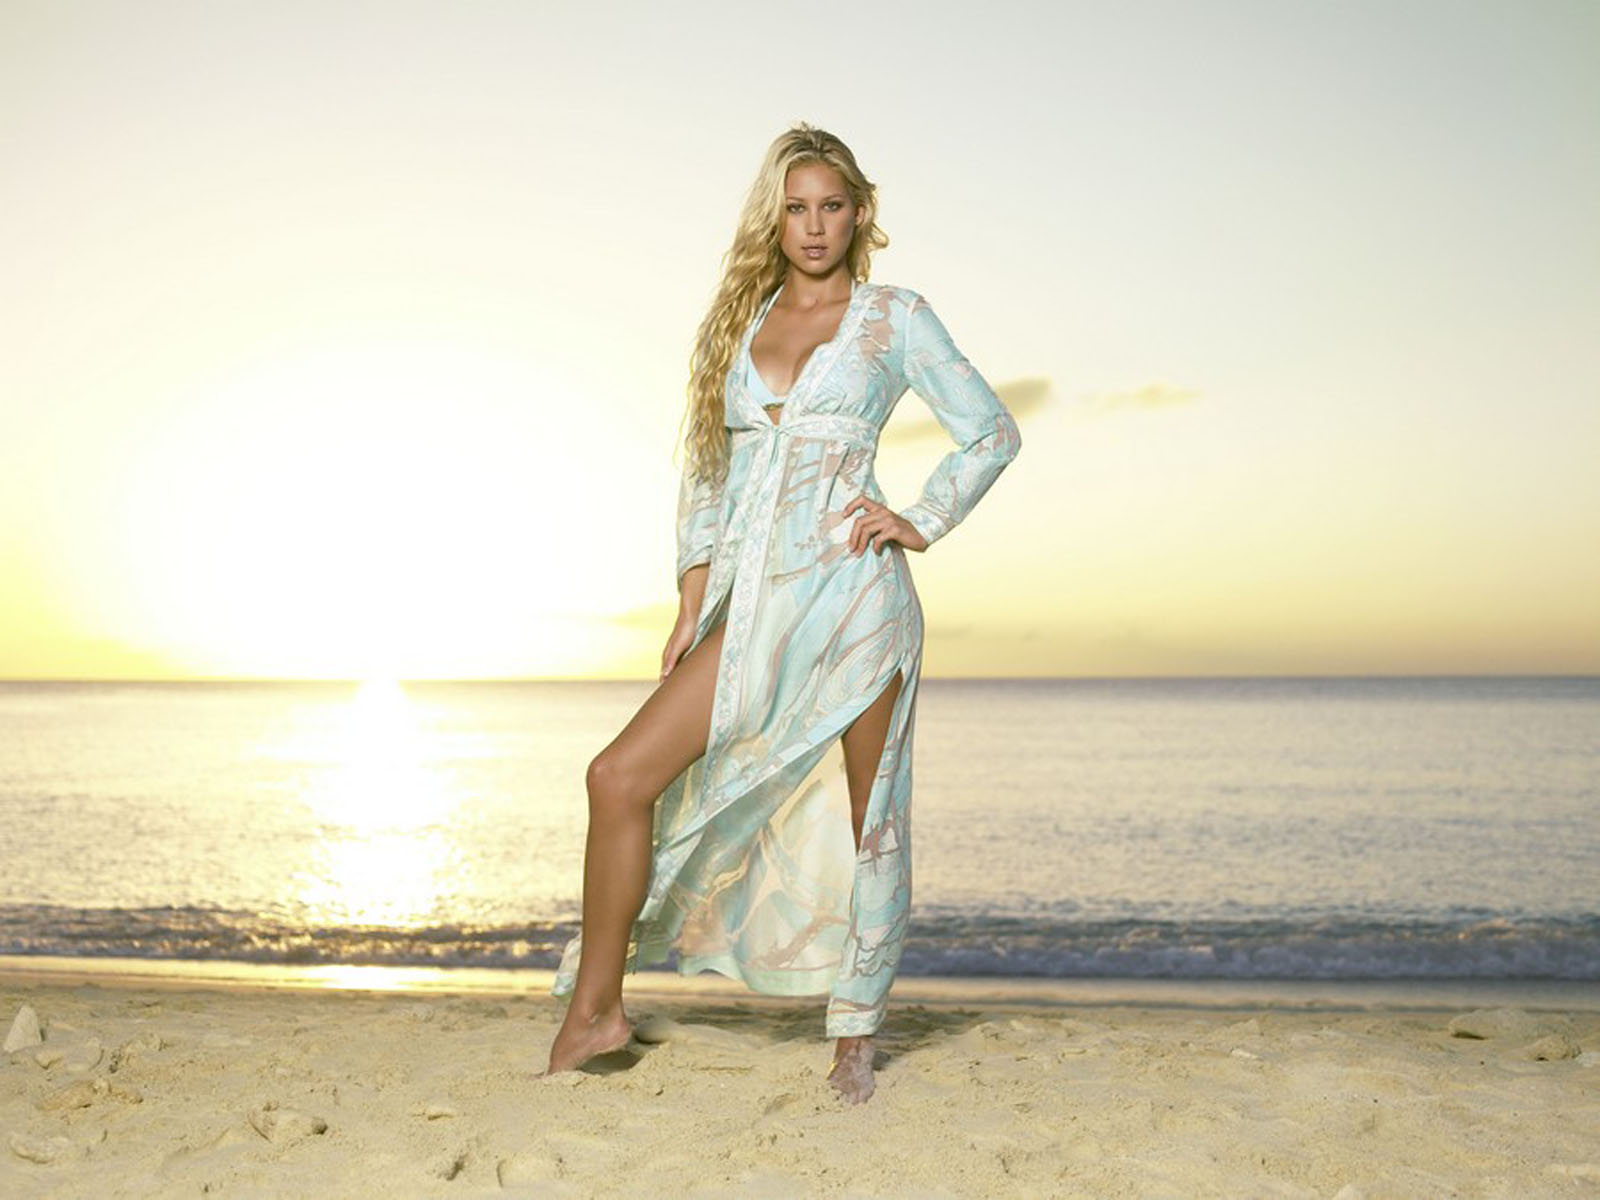 Anna Kournikova Photo Gallery 564 Best Anna Kournikova